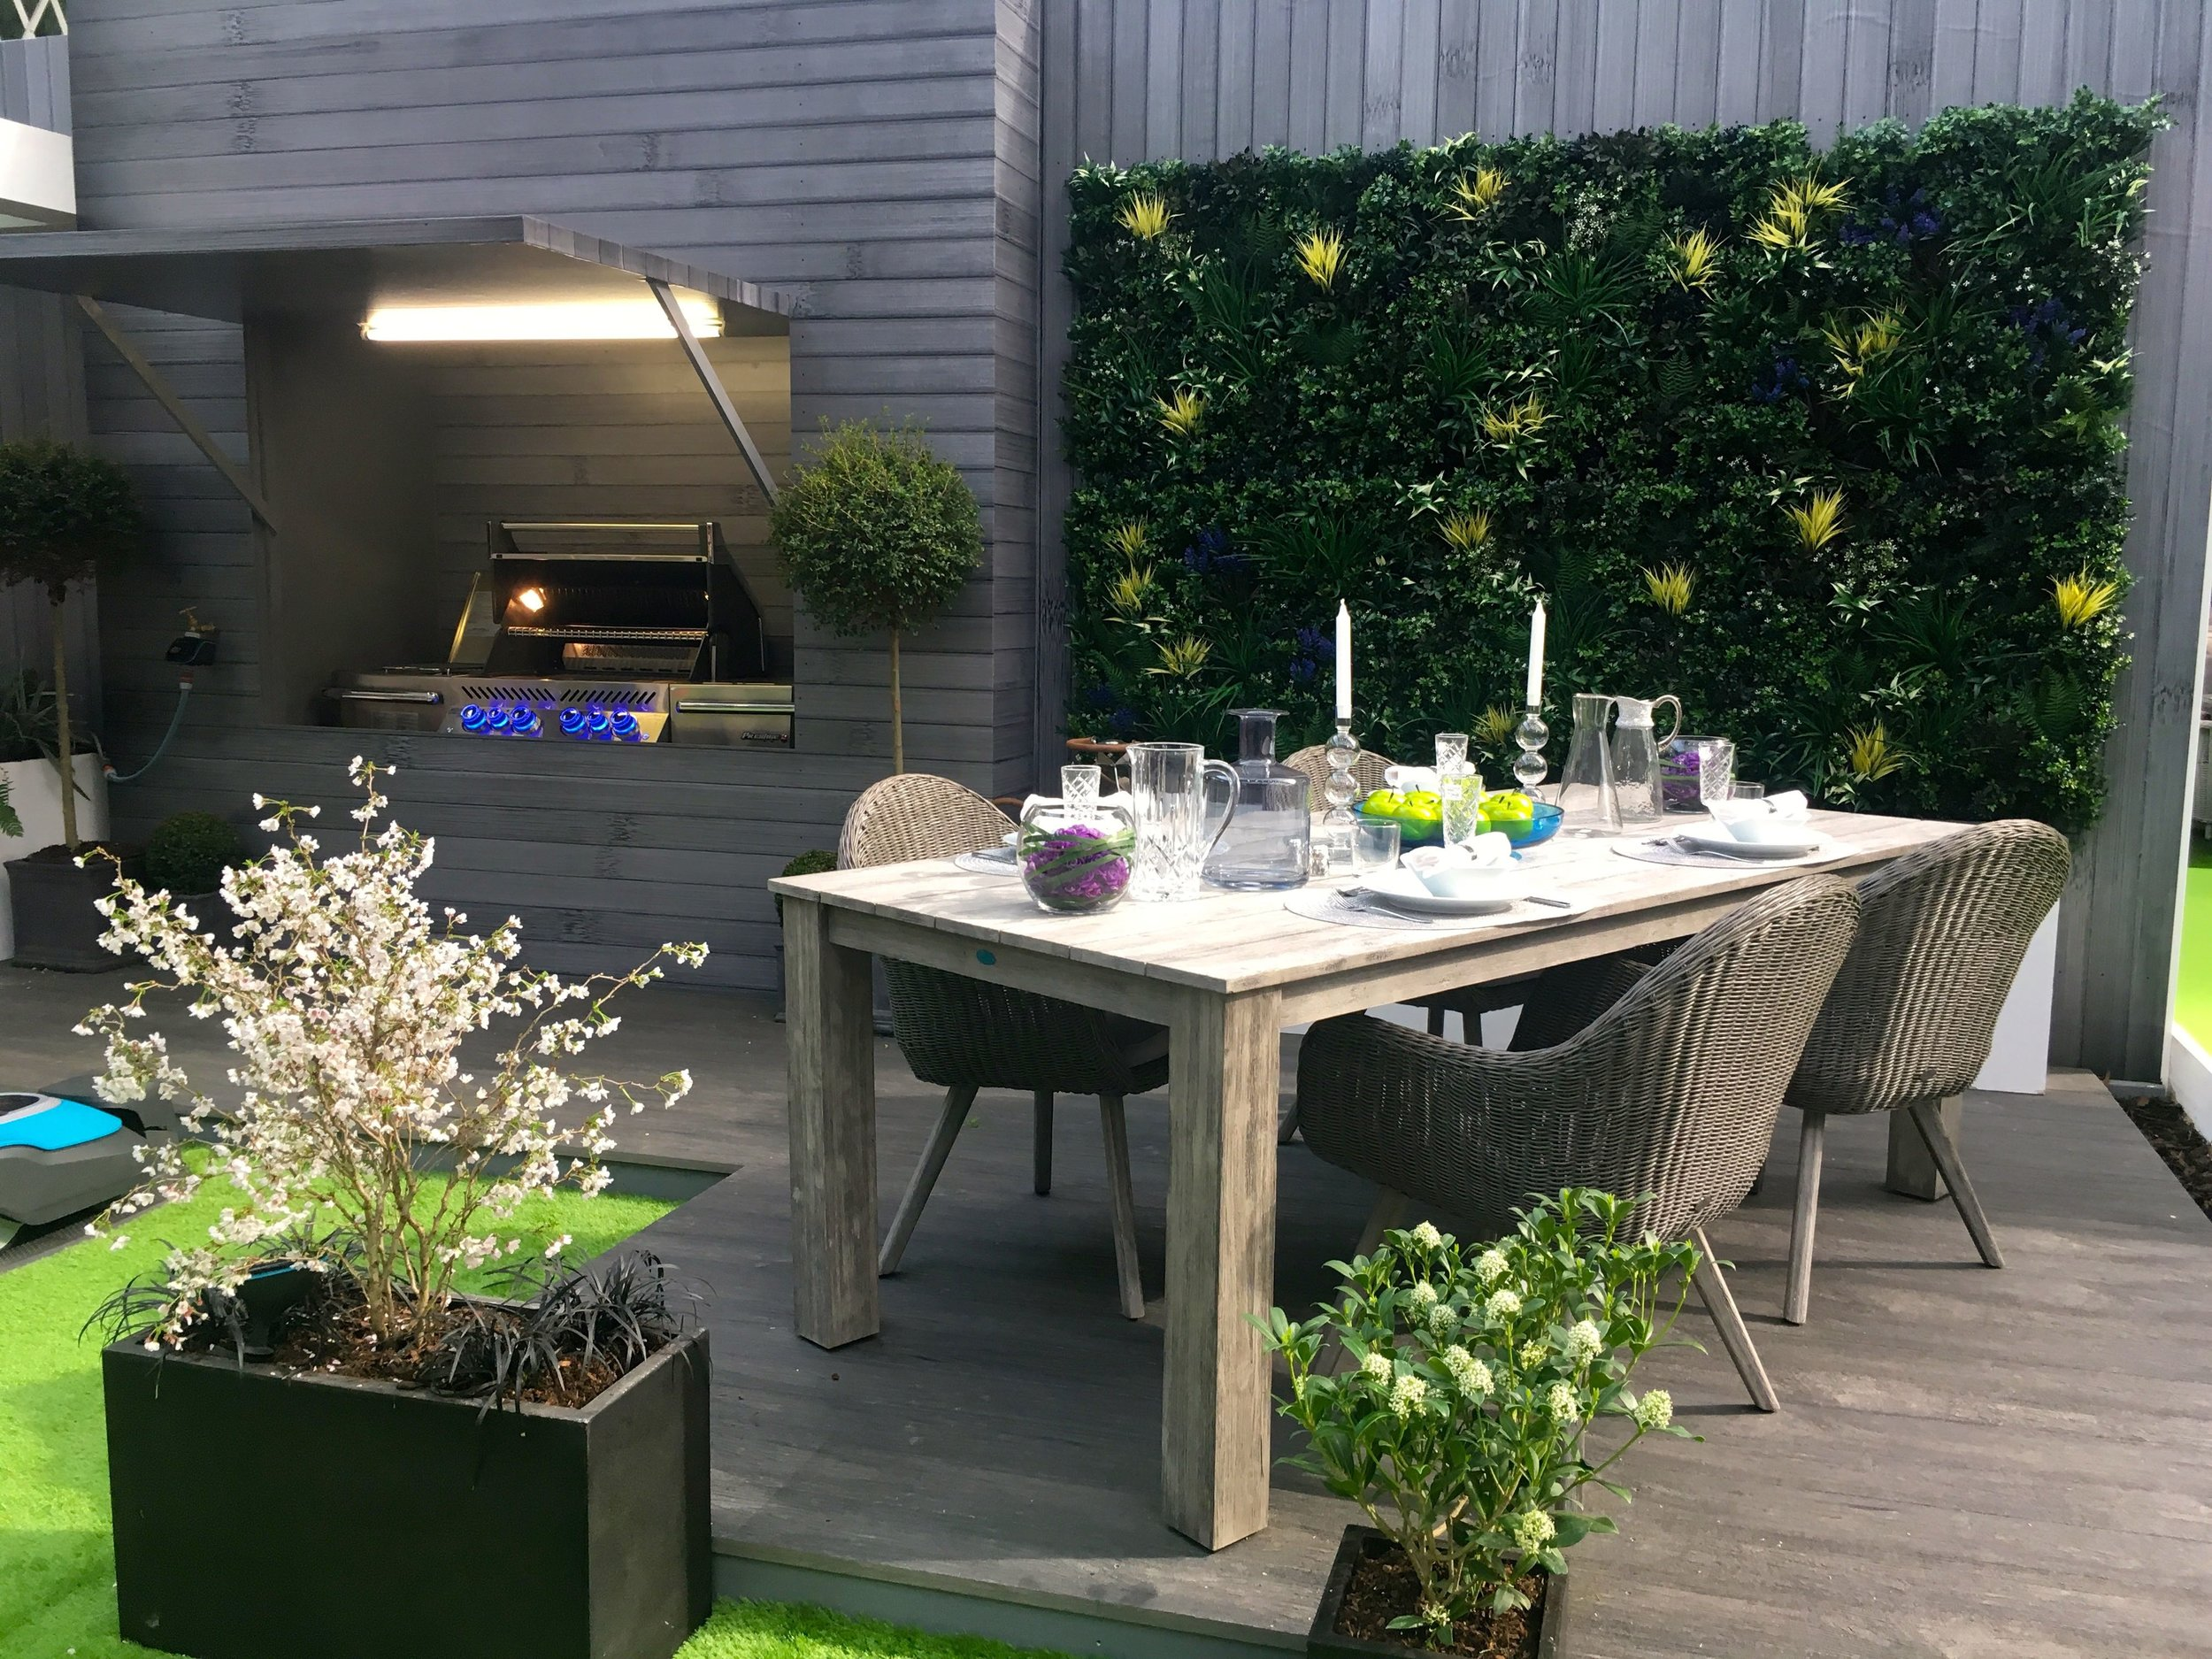 A place to dine in the Contemporary Garden at the Ideal Home Show